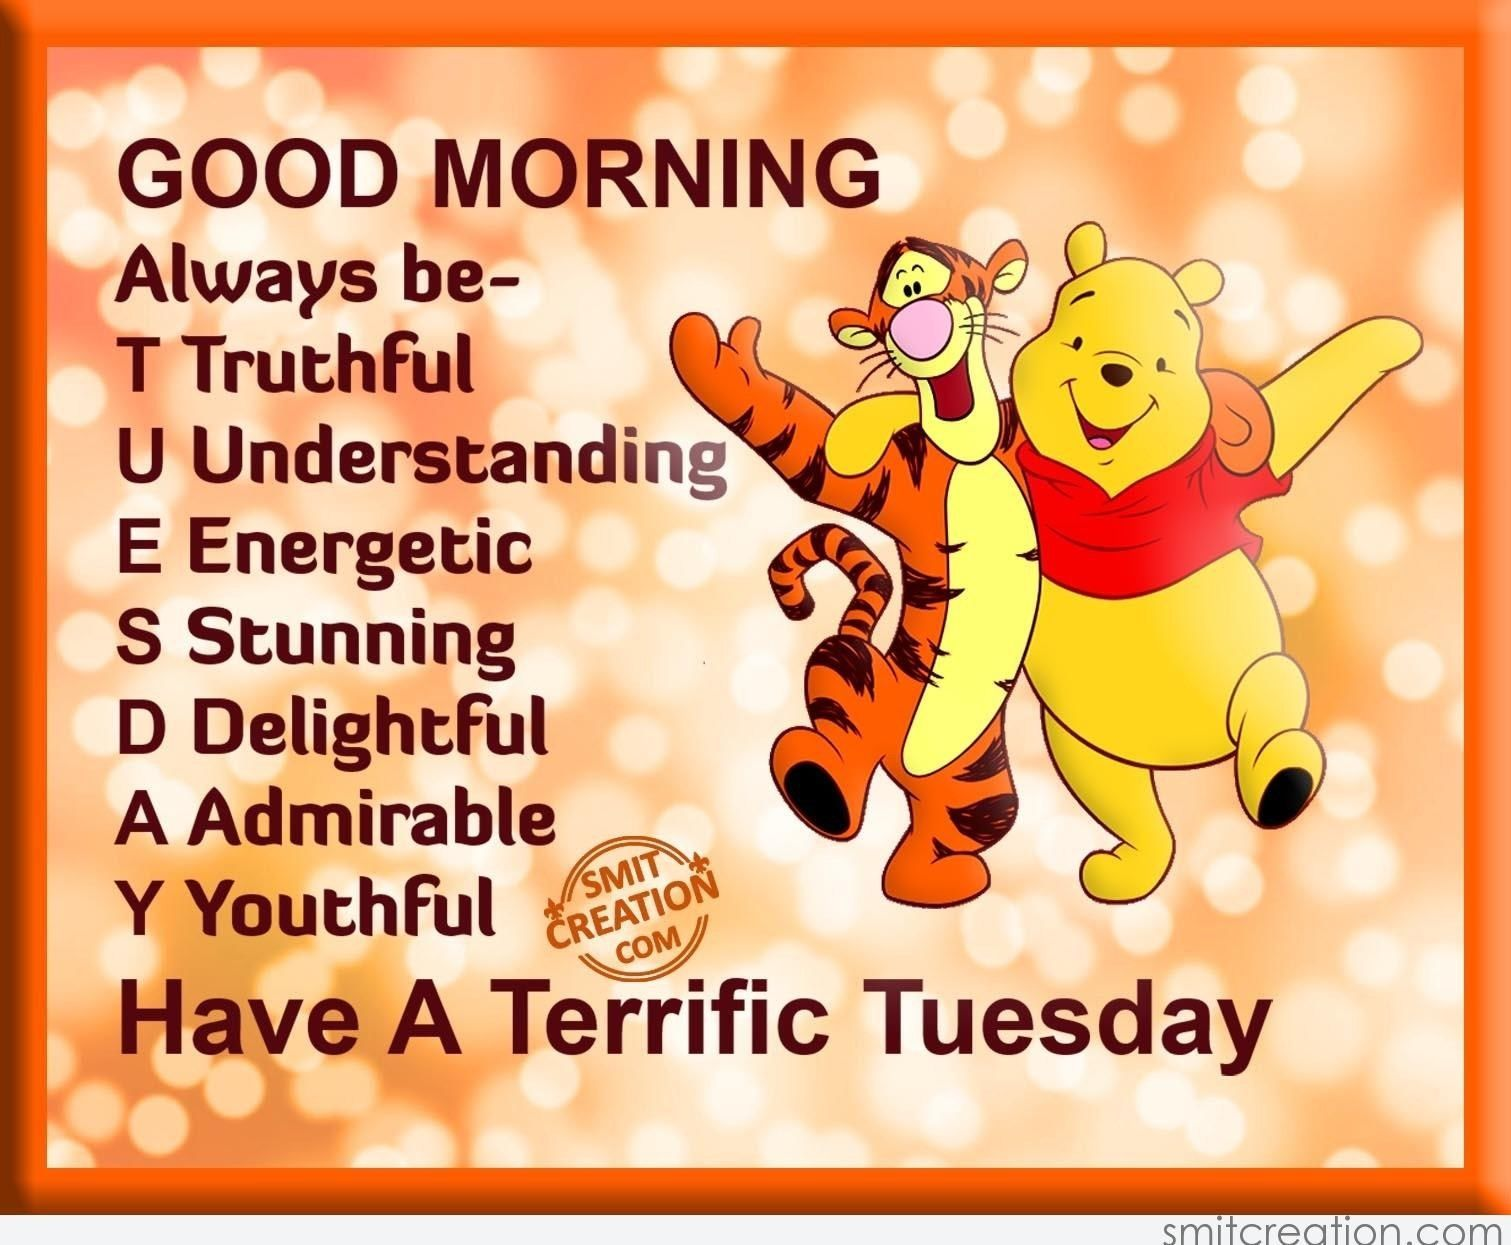 Tuesday Morning Quotes Good Morning Have A Terrific Tuesday Good Morning Tuesday Tuesday .